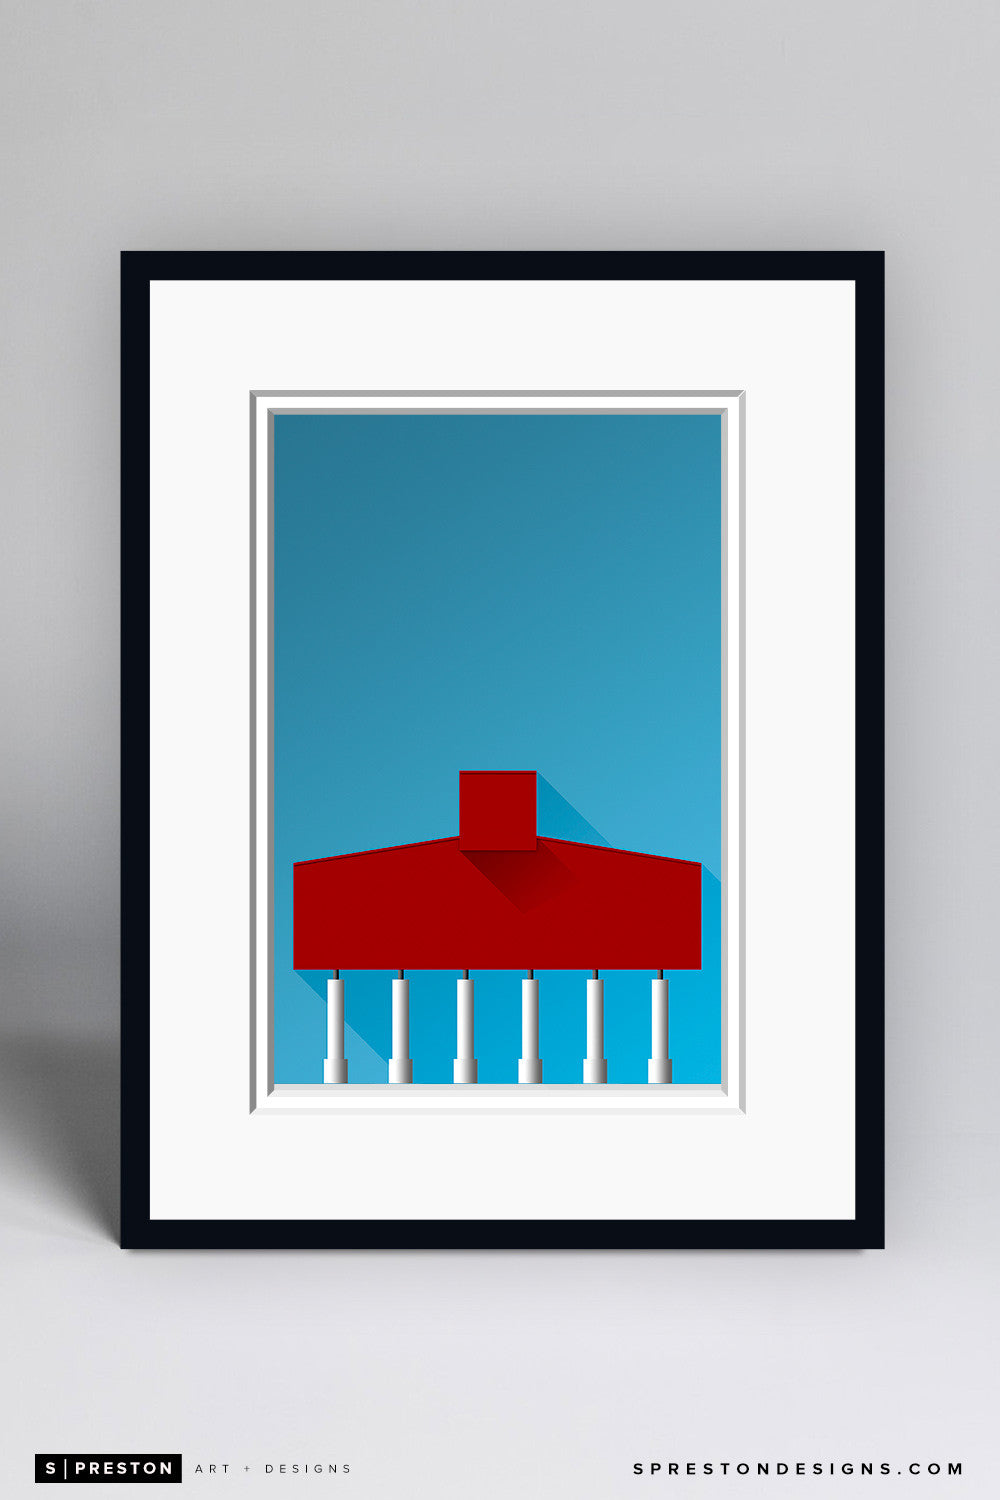 Minimalist Bryant-Denny Stadium Art Print - University of Alabama - S. Preston Art + Designs